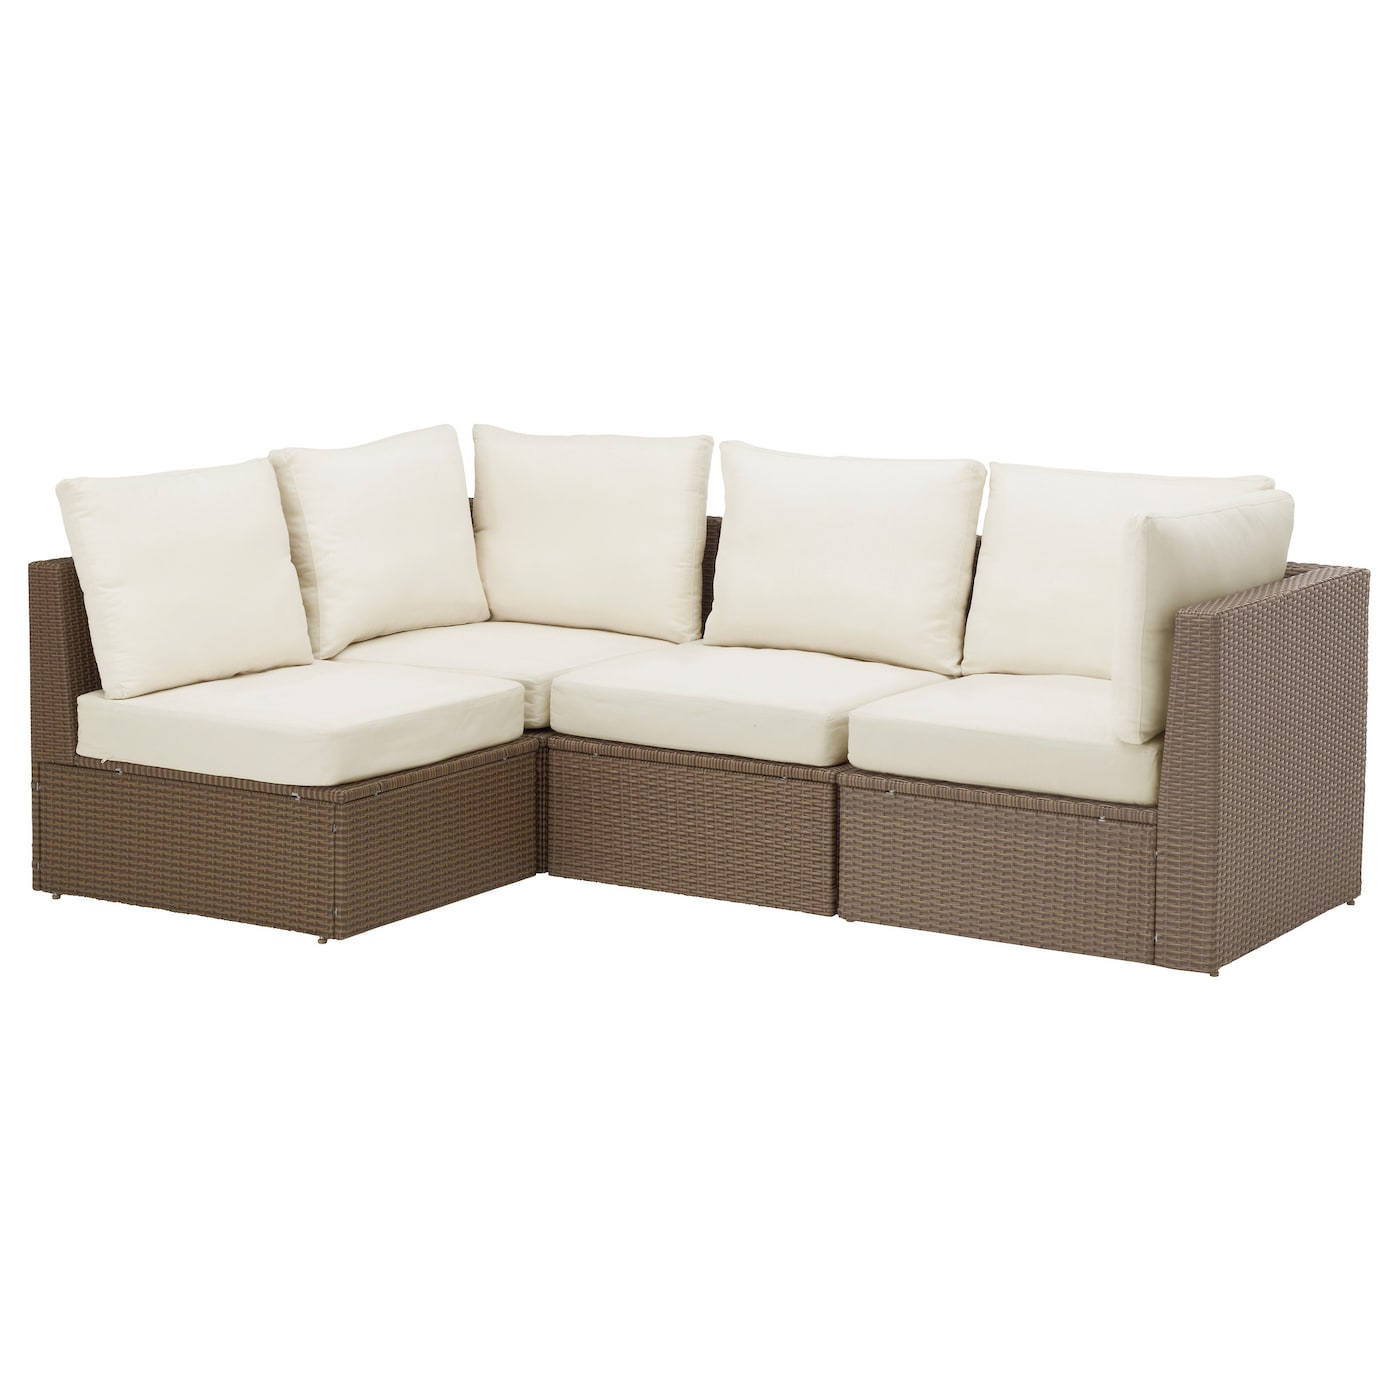 arholma corner sofa 3 1 outdoor brown beige 141 217x76x66 cm ikea. Black Bedroom Furniture Sets. Home Design Ideas